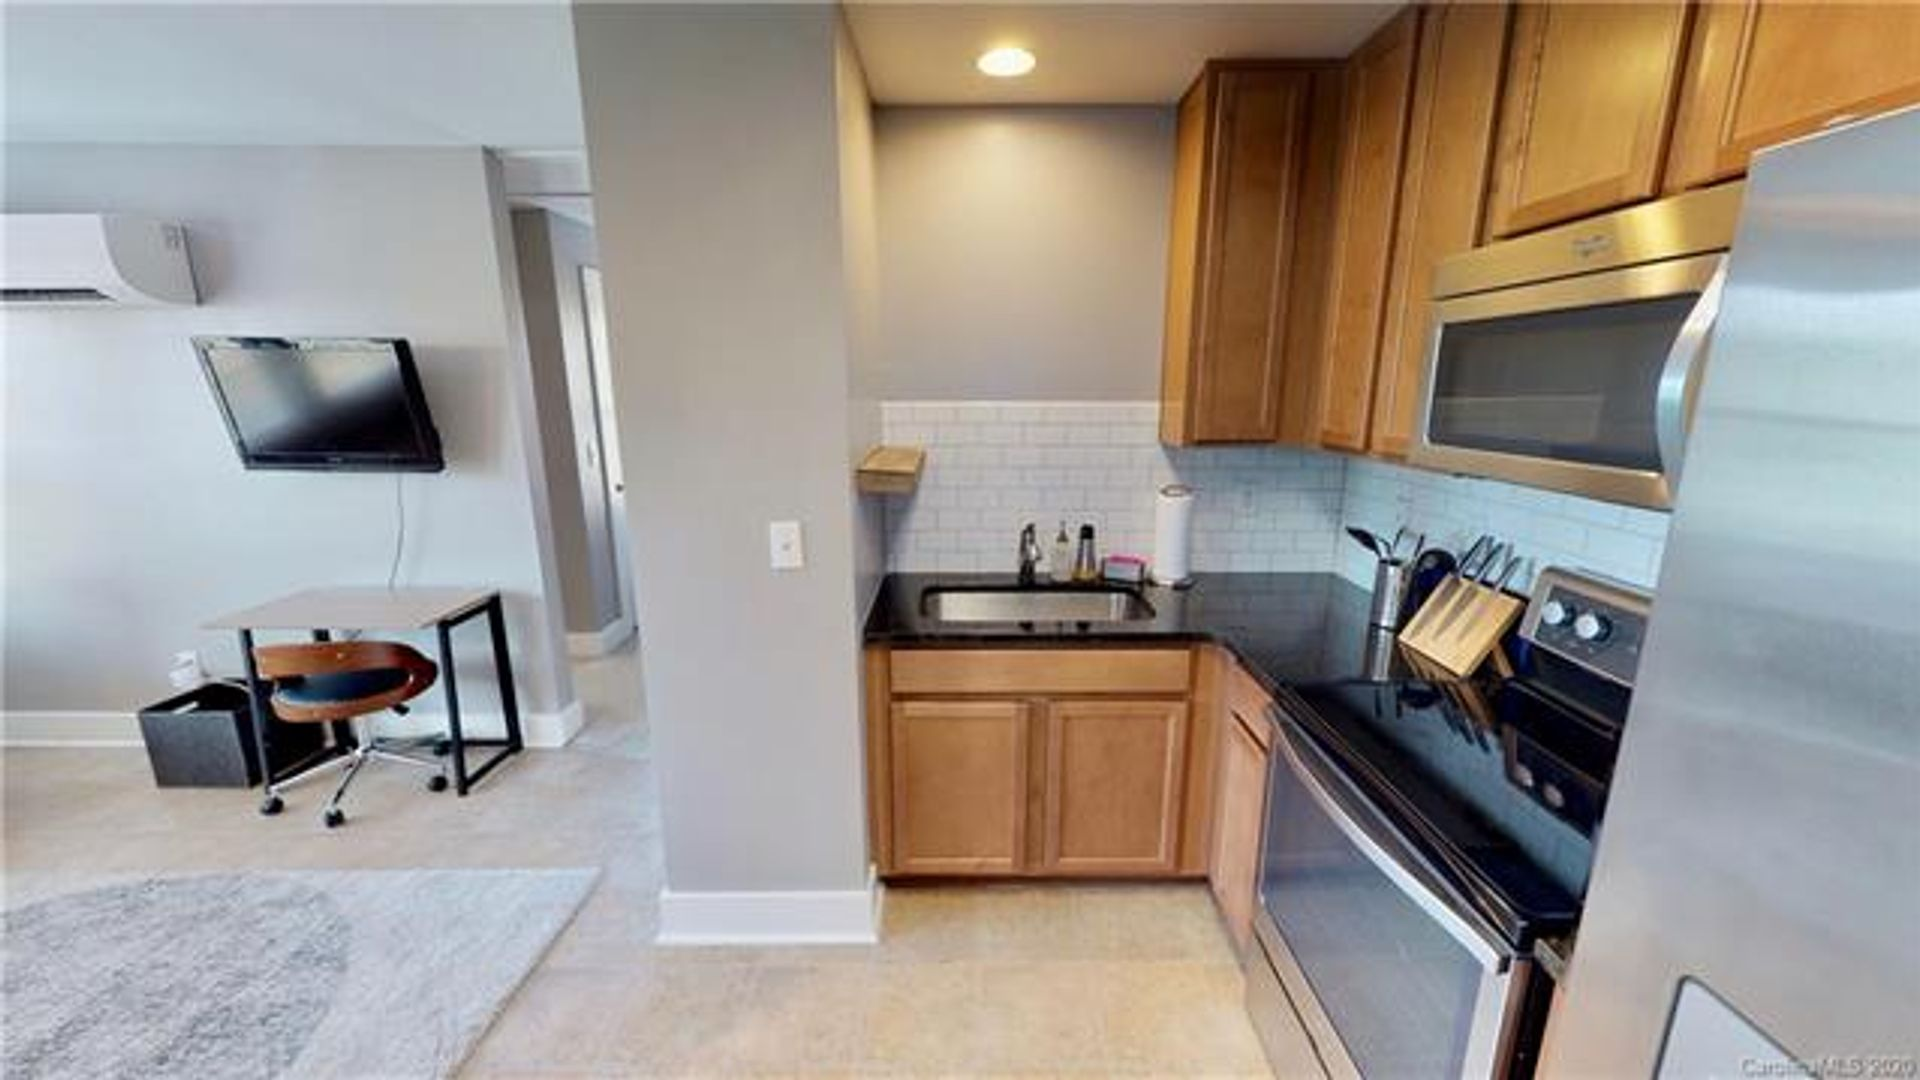 1 bedroom apartment at 1247 badger court charlotte nc